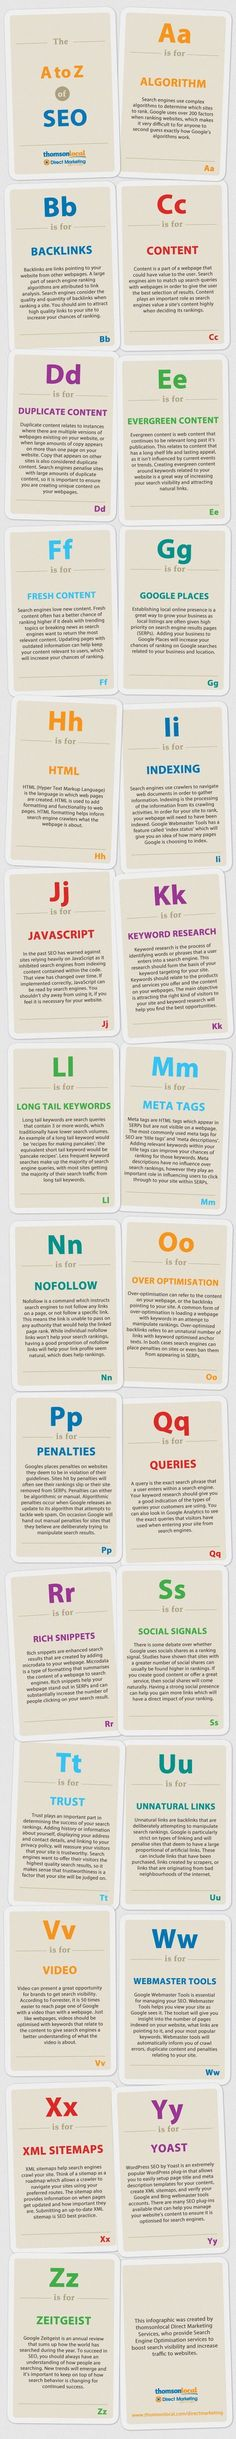 Infographic: The A to Z of SEO